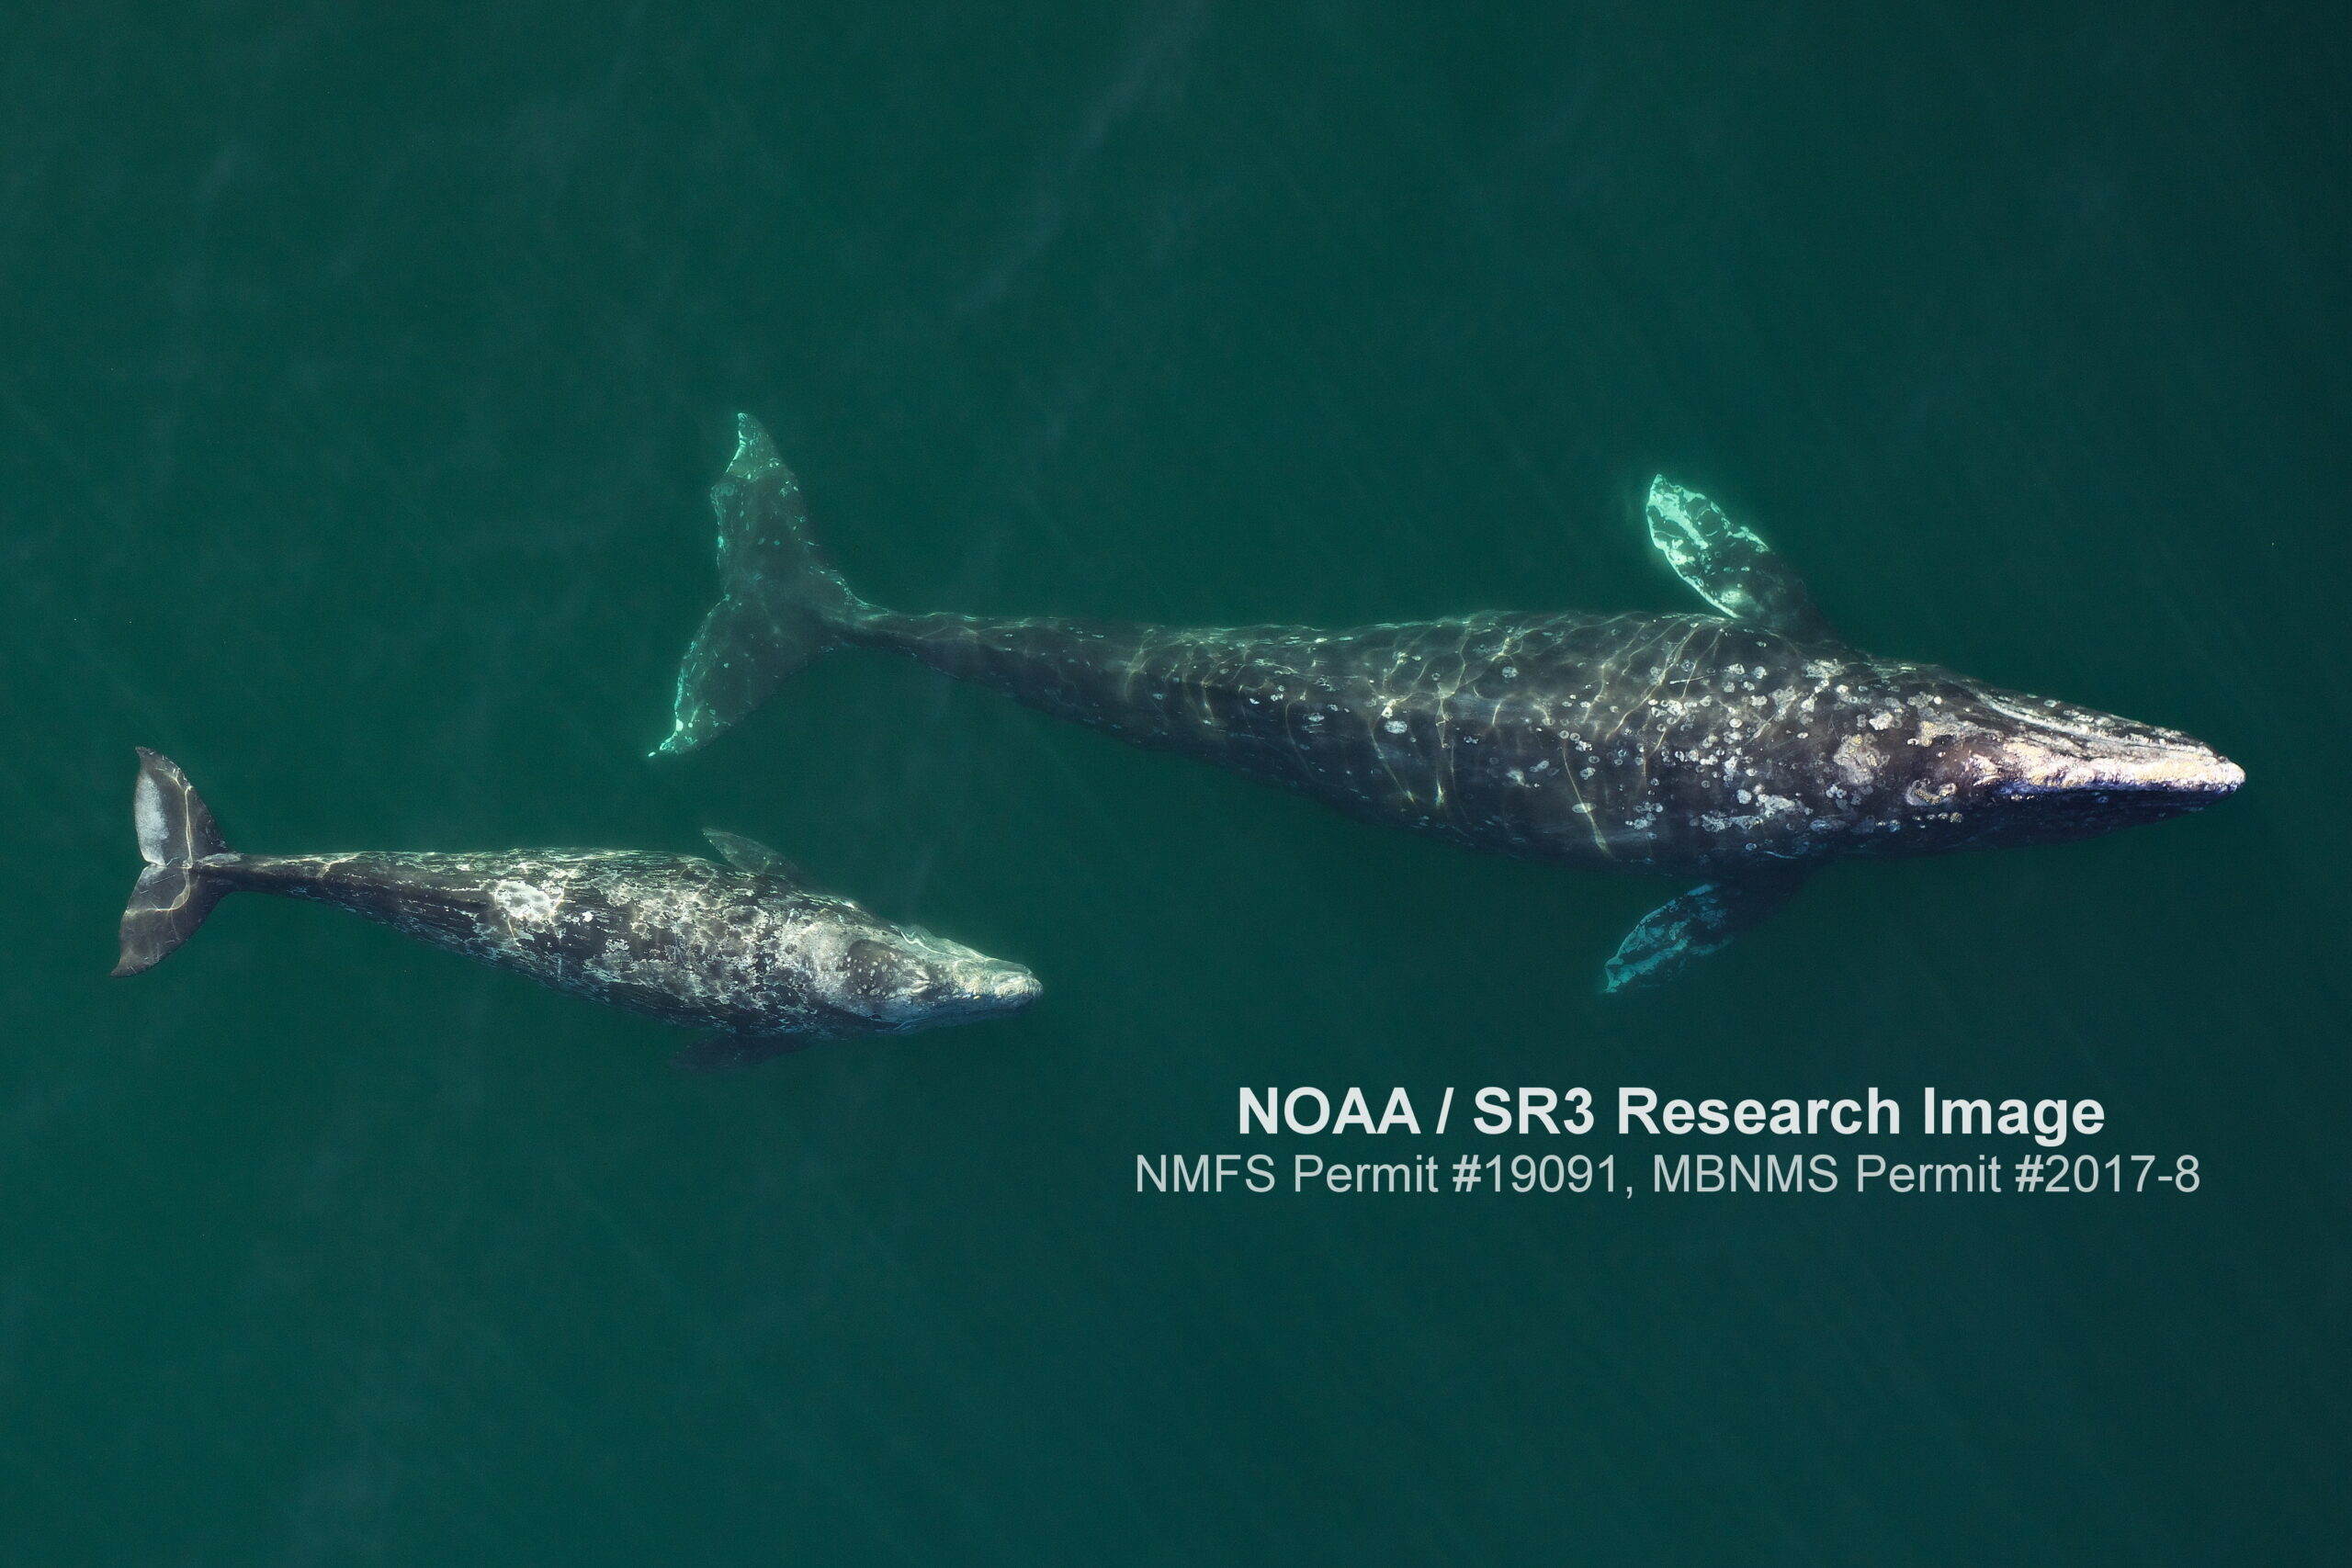 "A larger gray whale and a smaller gray whale, both with mottled white spots, are shown from above swimming side by side in greenish waters. The text reads ""NOAA/SR3 Research Image NMFS Permit #19091, MBNMS Permit #2017-8"""